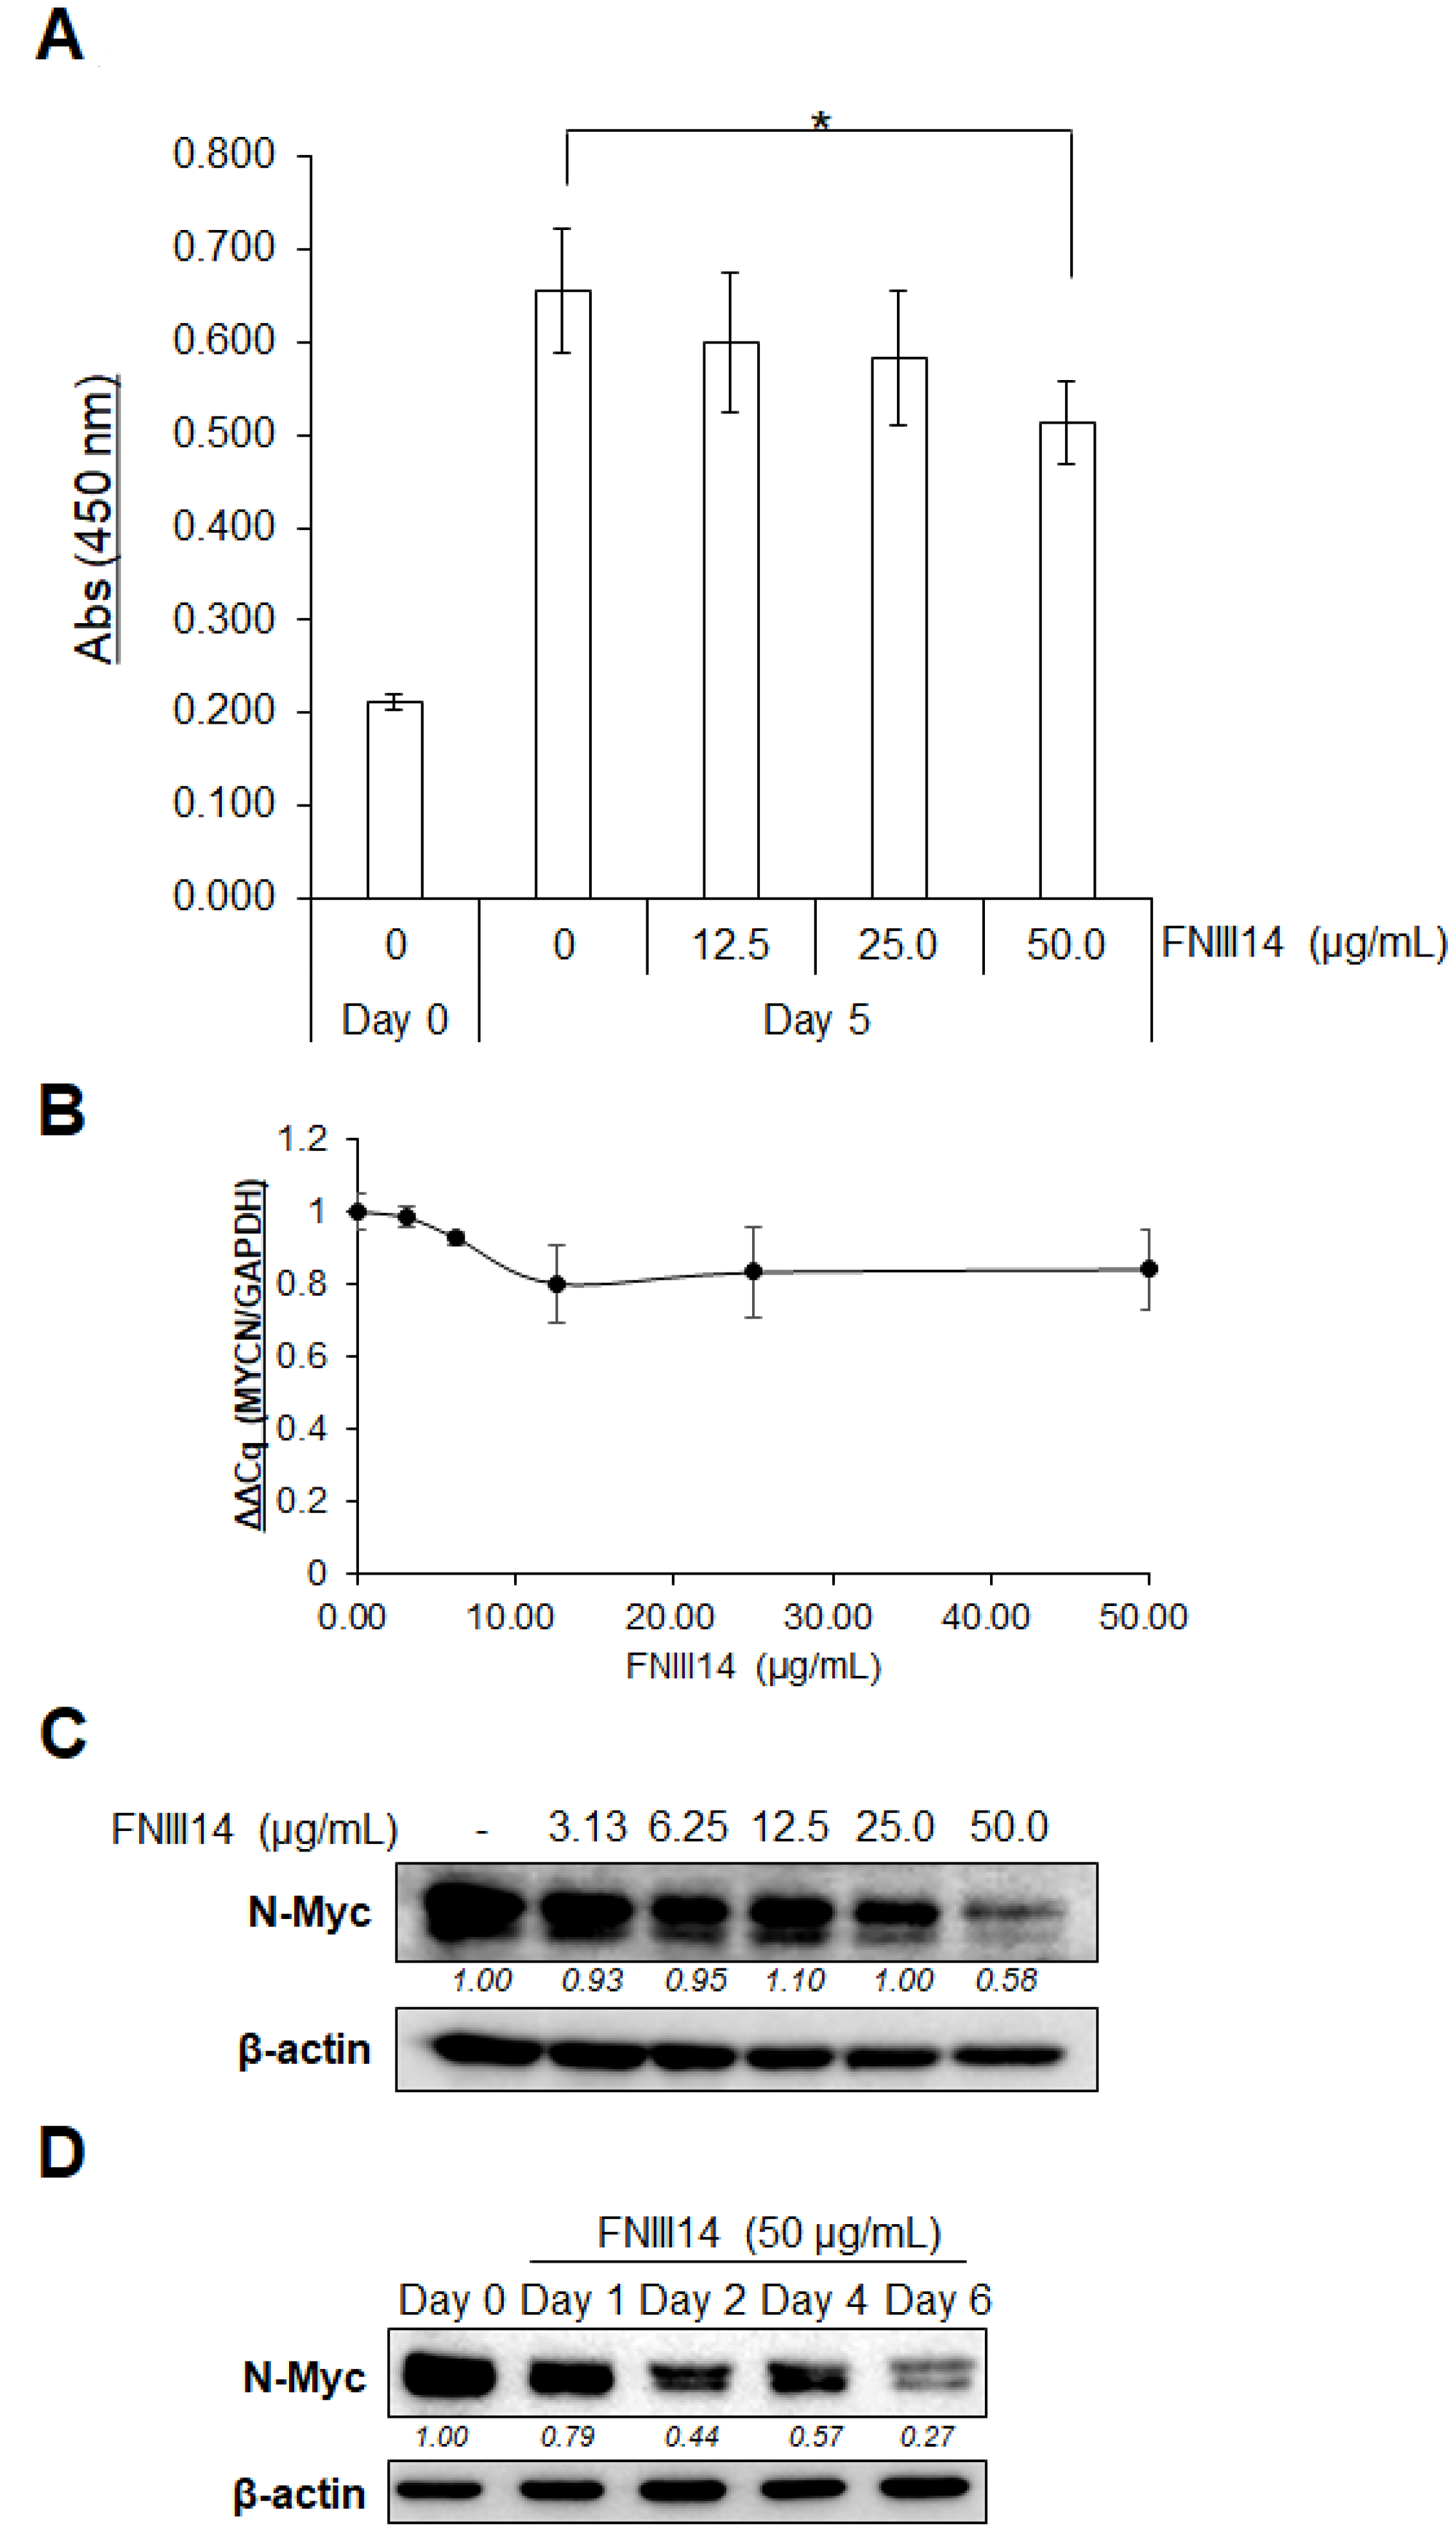 FNIII14 induces a reduction of N-Myc protein levels.